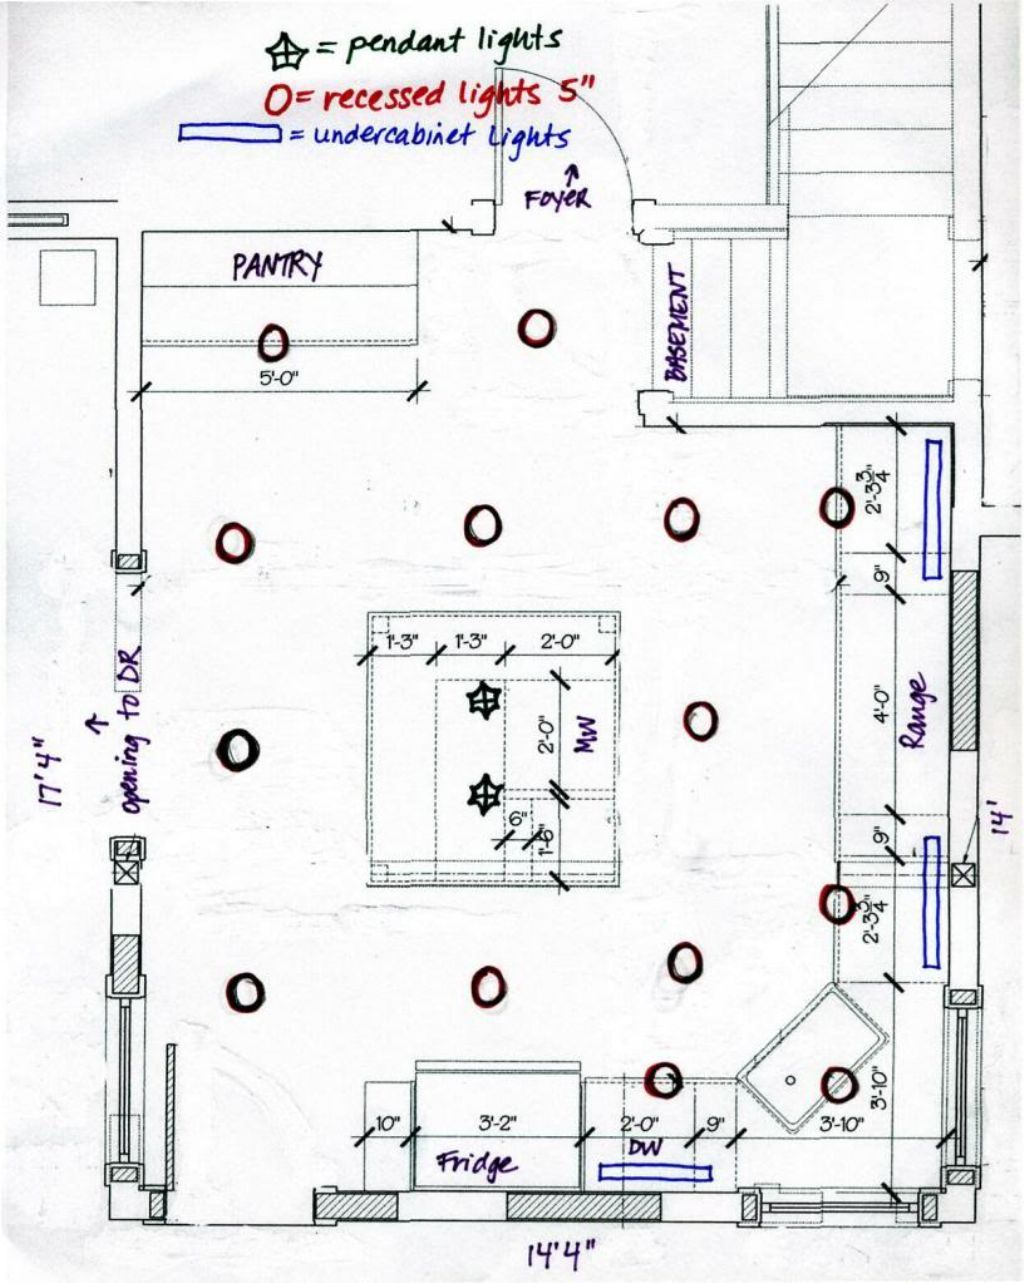 Recessed Lighting Layout Diagram Recessed Lighting Layout Kitchen Lighting Layout Kitchen Recessed Lighting